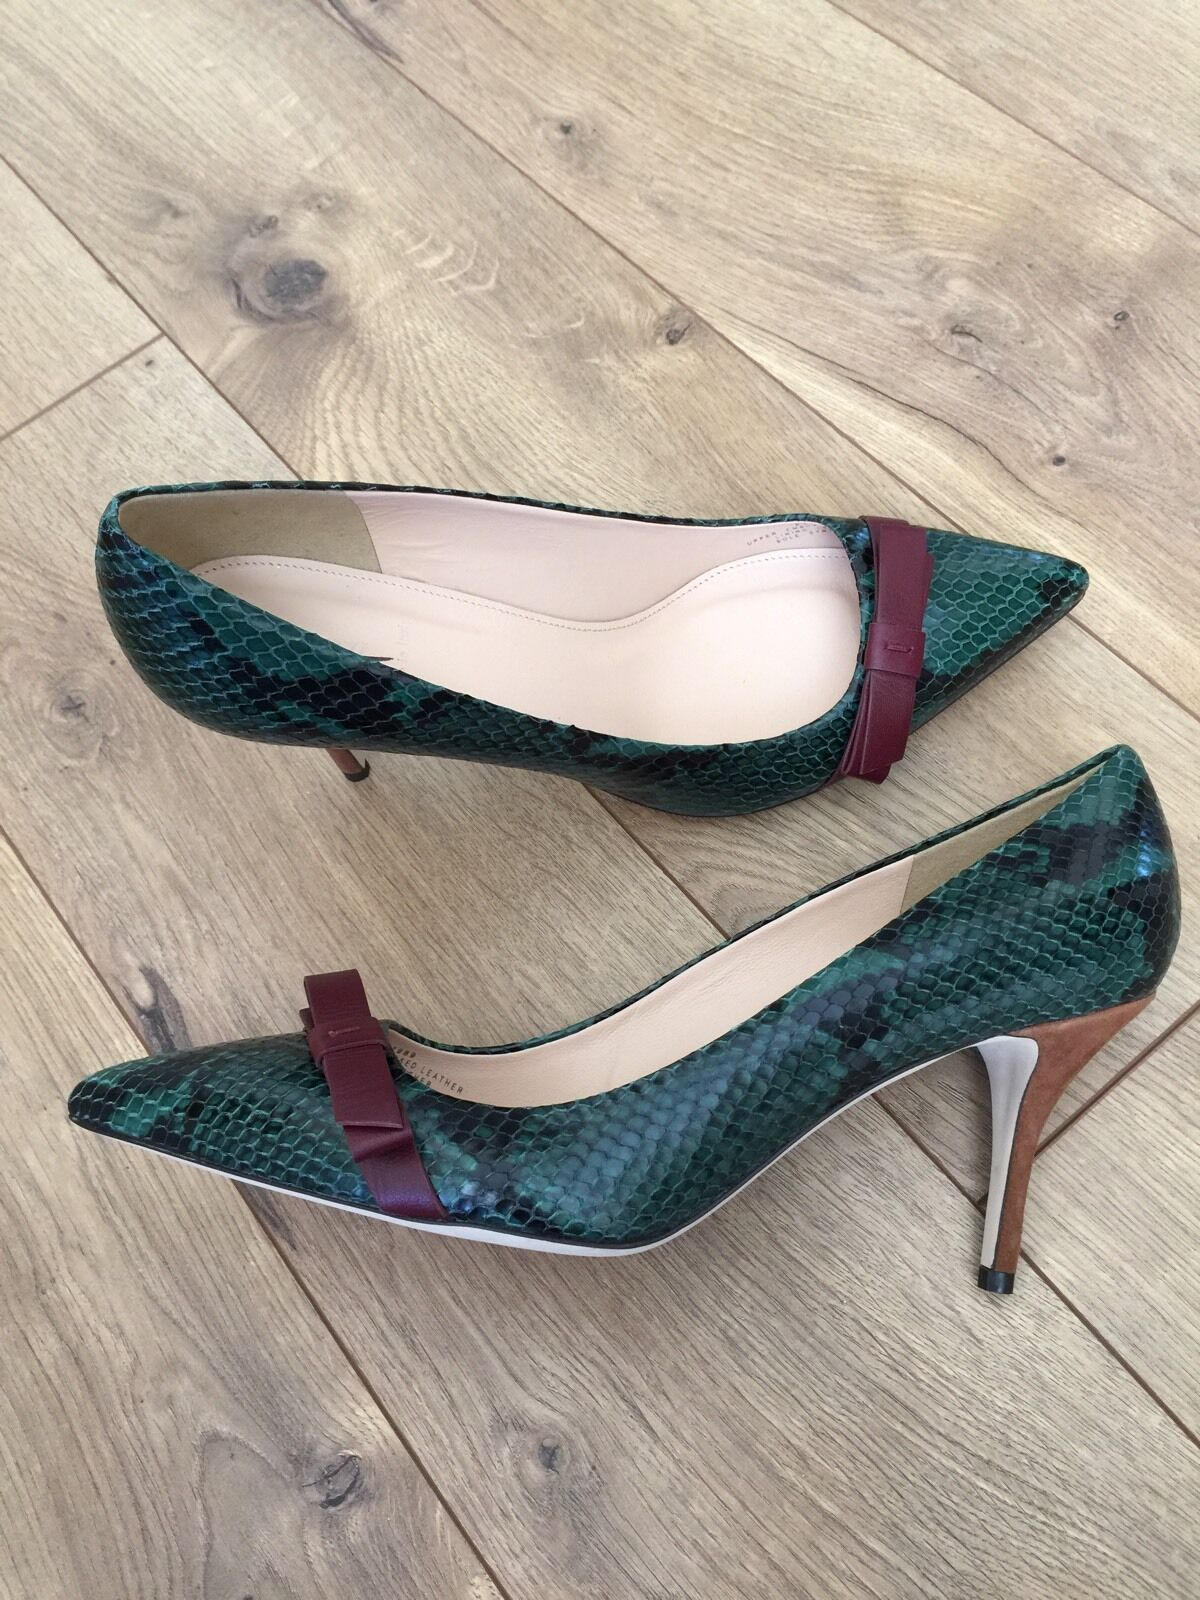 JCrew  288 Colette Bow Pump Snakeskin Printed Printed Printed Leather 11 Deep Jade F7989 NEW 7c0f89